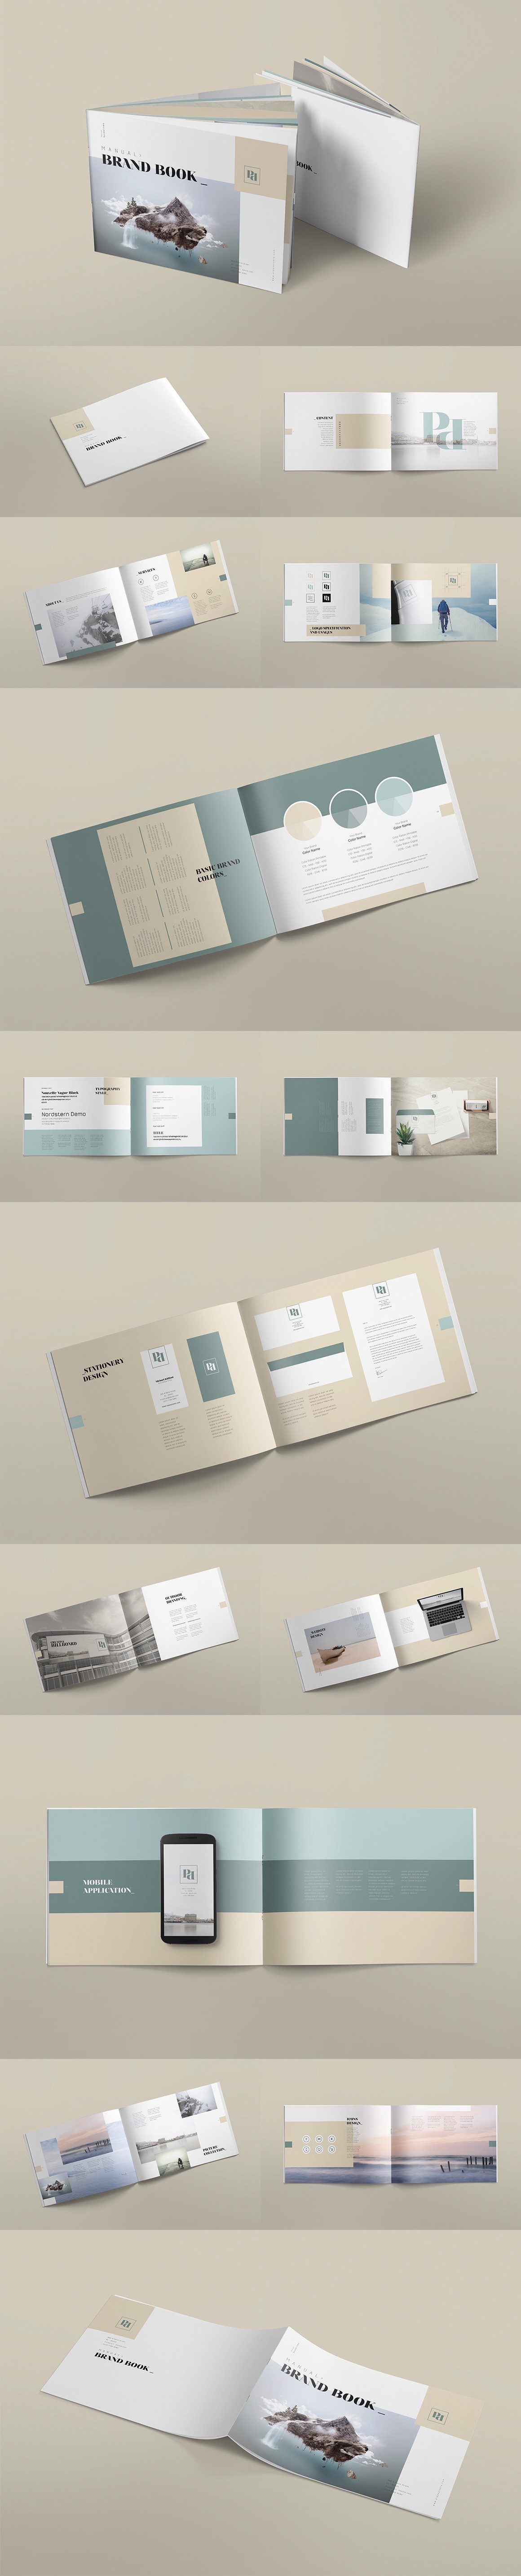 Style Guide Brand Book Templates By The Logo Creative Medium,Front Yard Garden Design Ideas With Pebbles